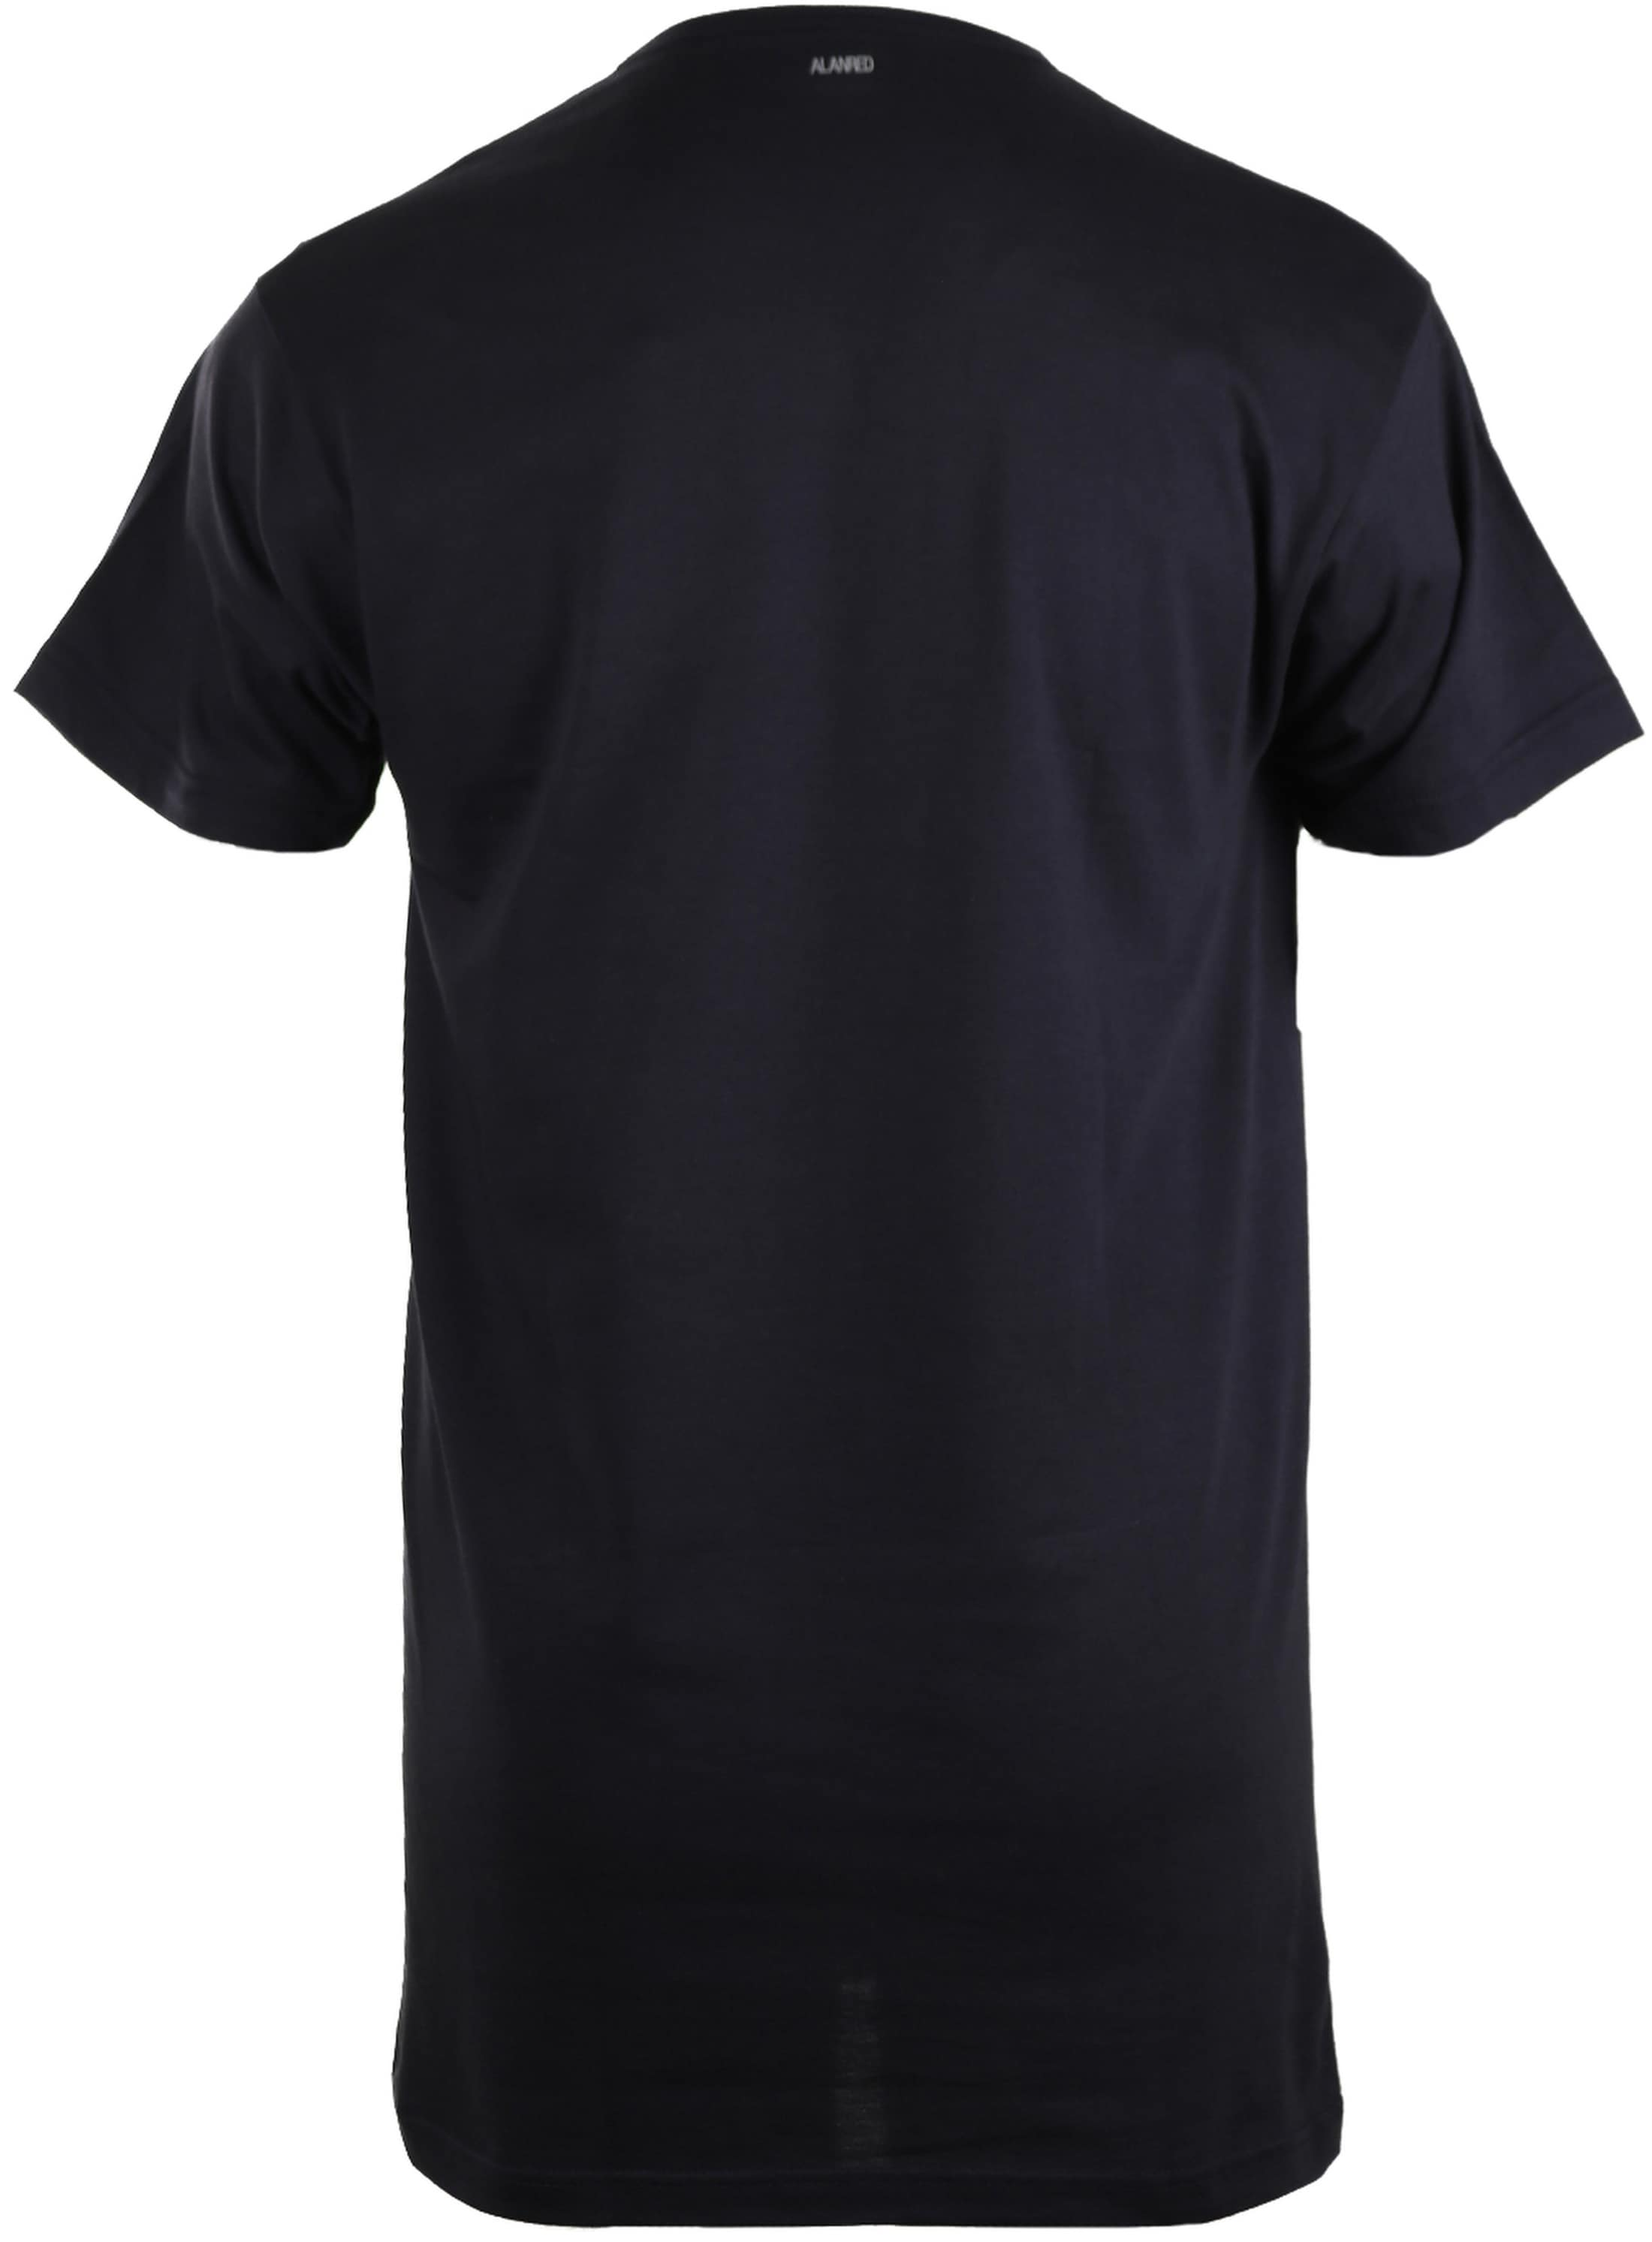 Alan Red Vermont Extra Long T-shirts Navy 2-Pack foto 2